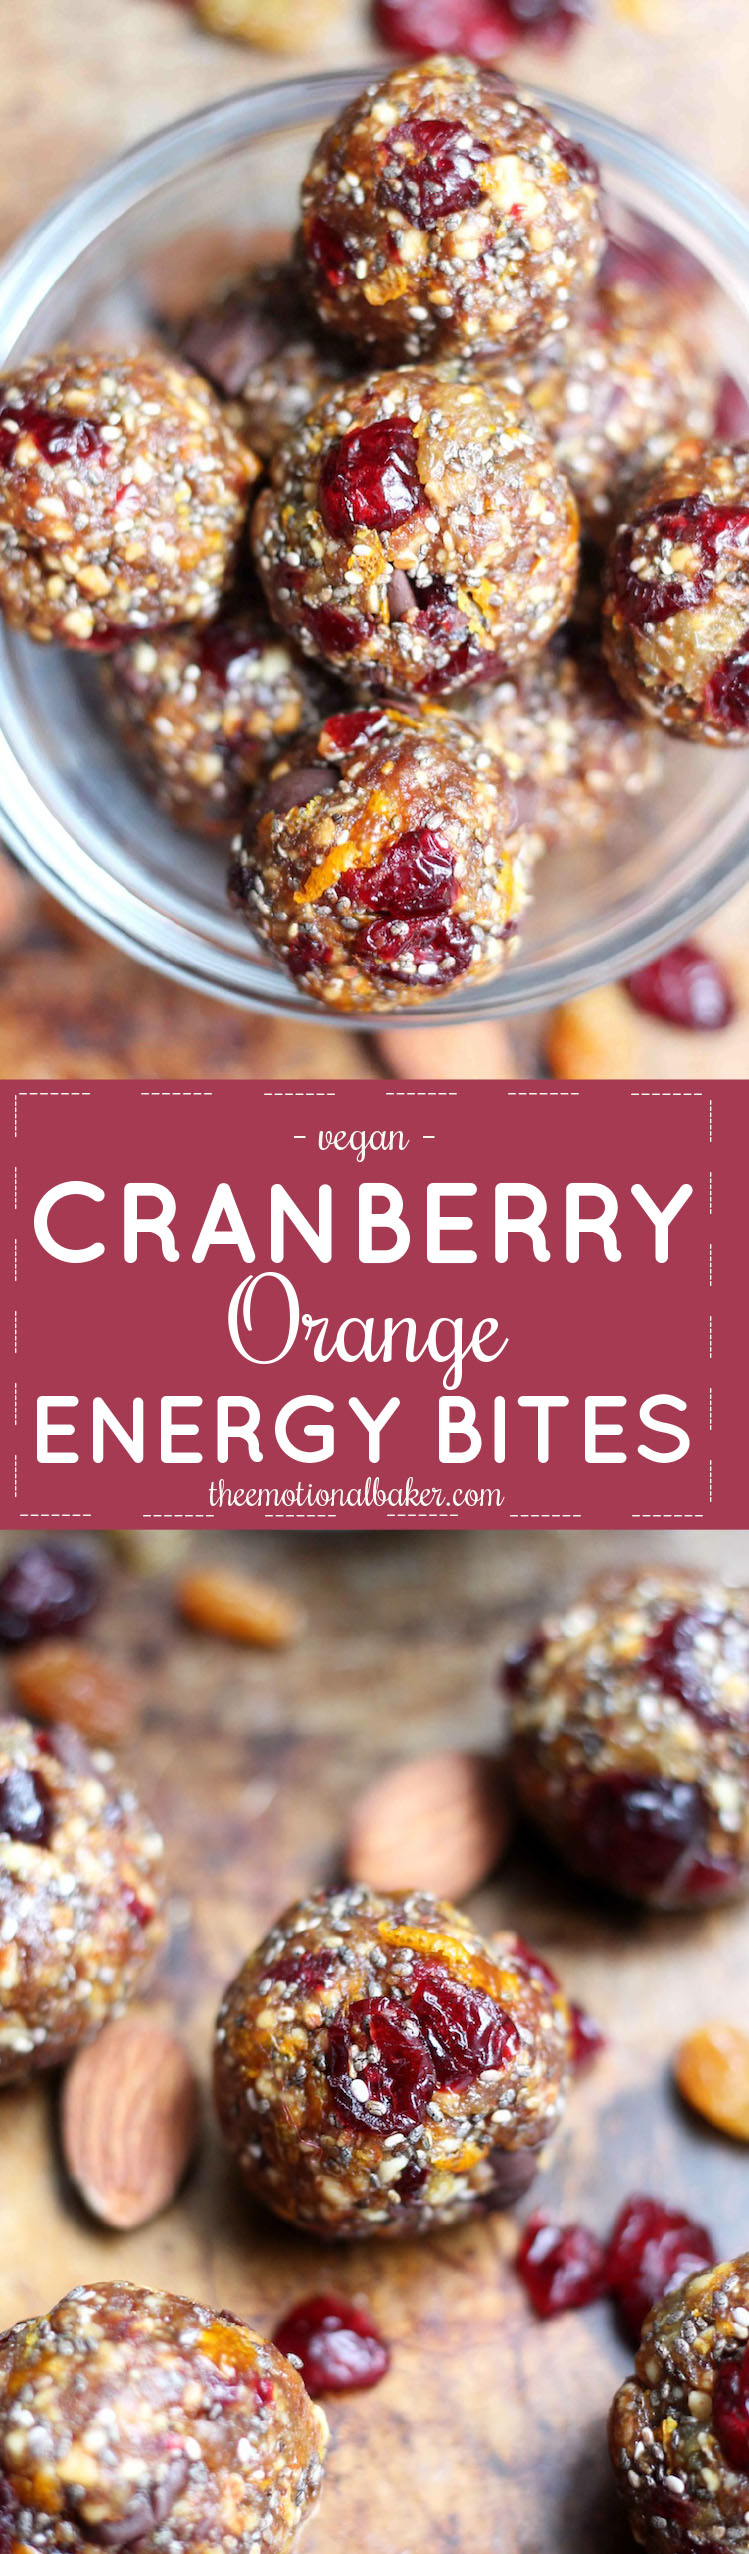 These Cranberry Orange Energy Bites have bright, bold flavor that will give you a jolt for studying, exercising & everything in between.